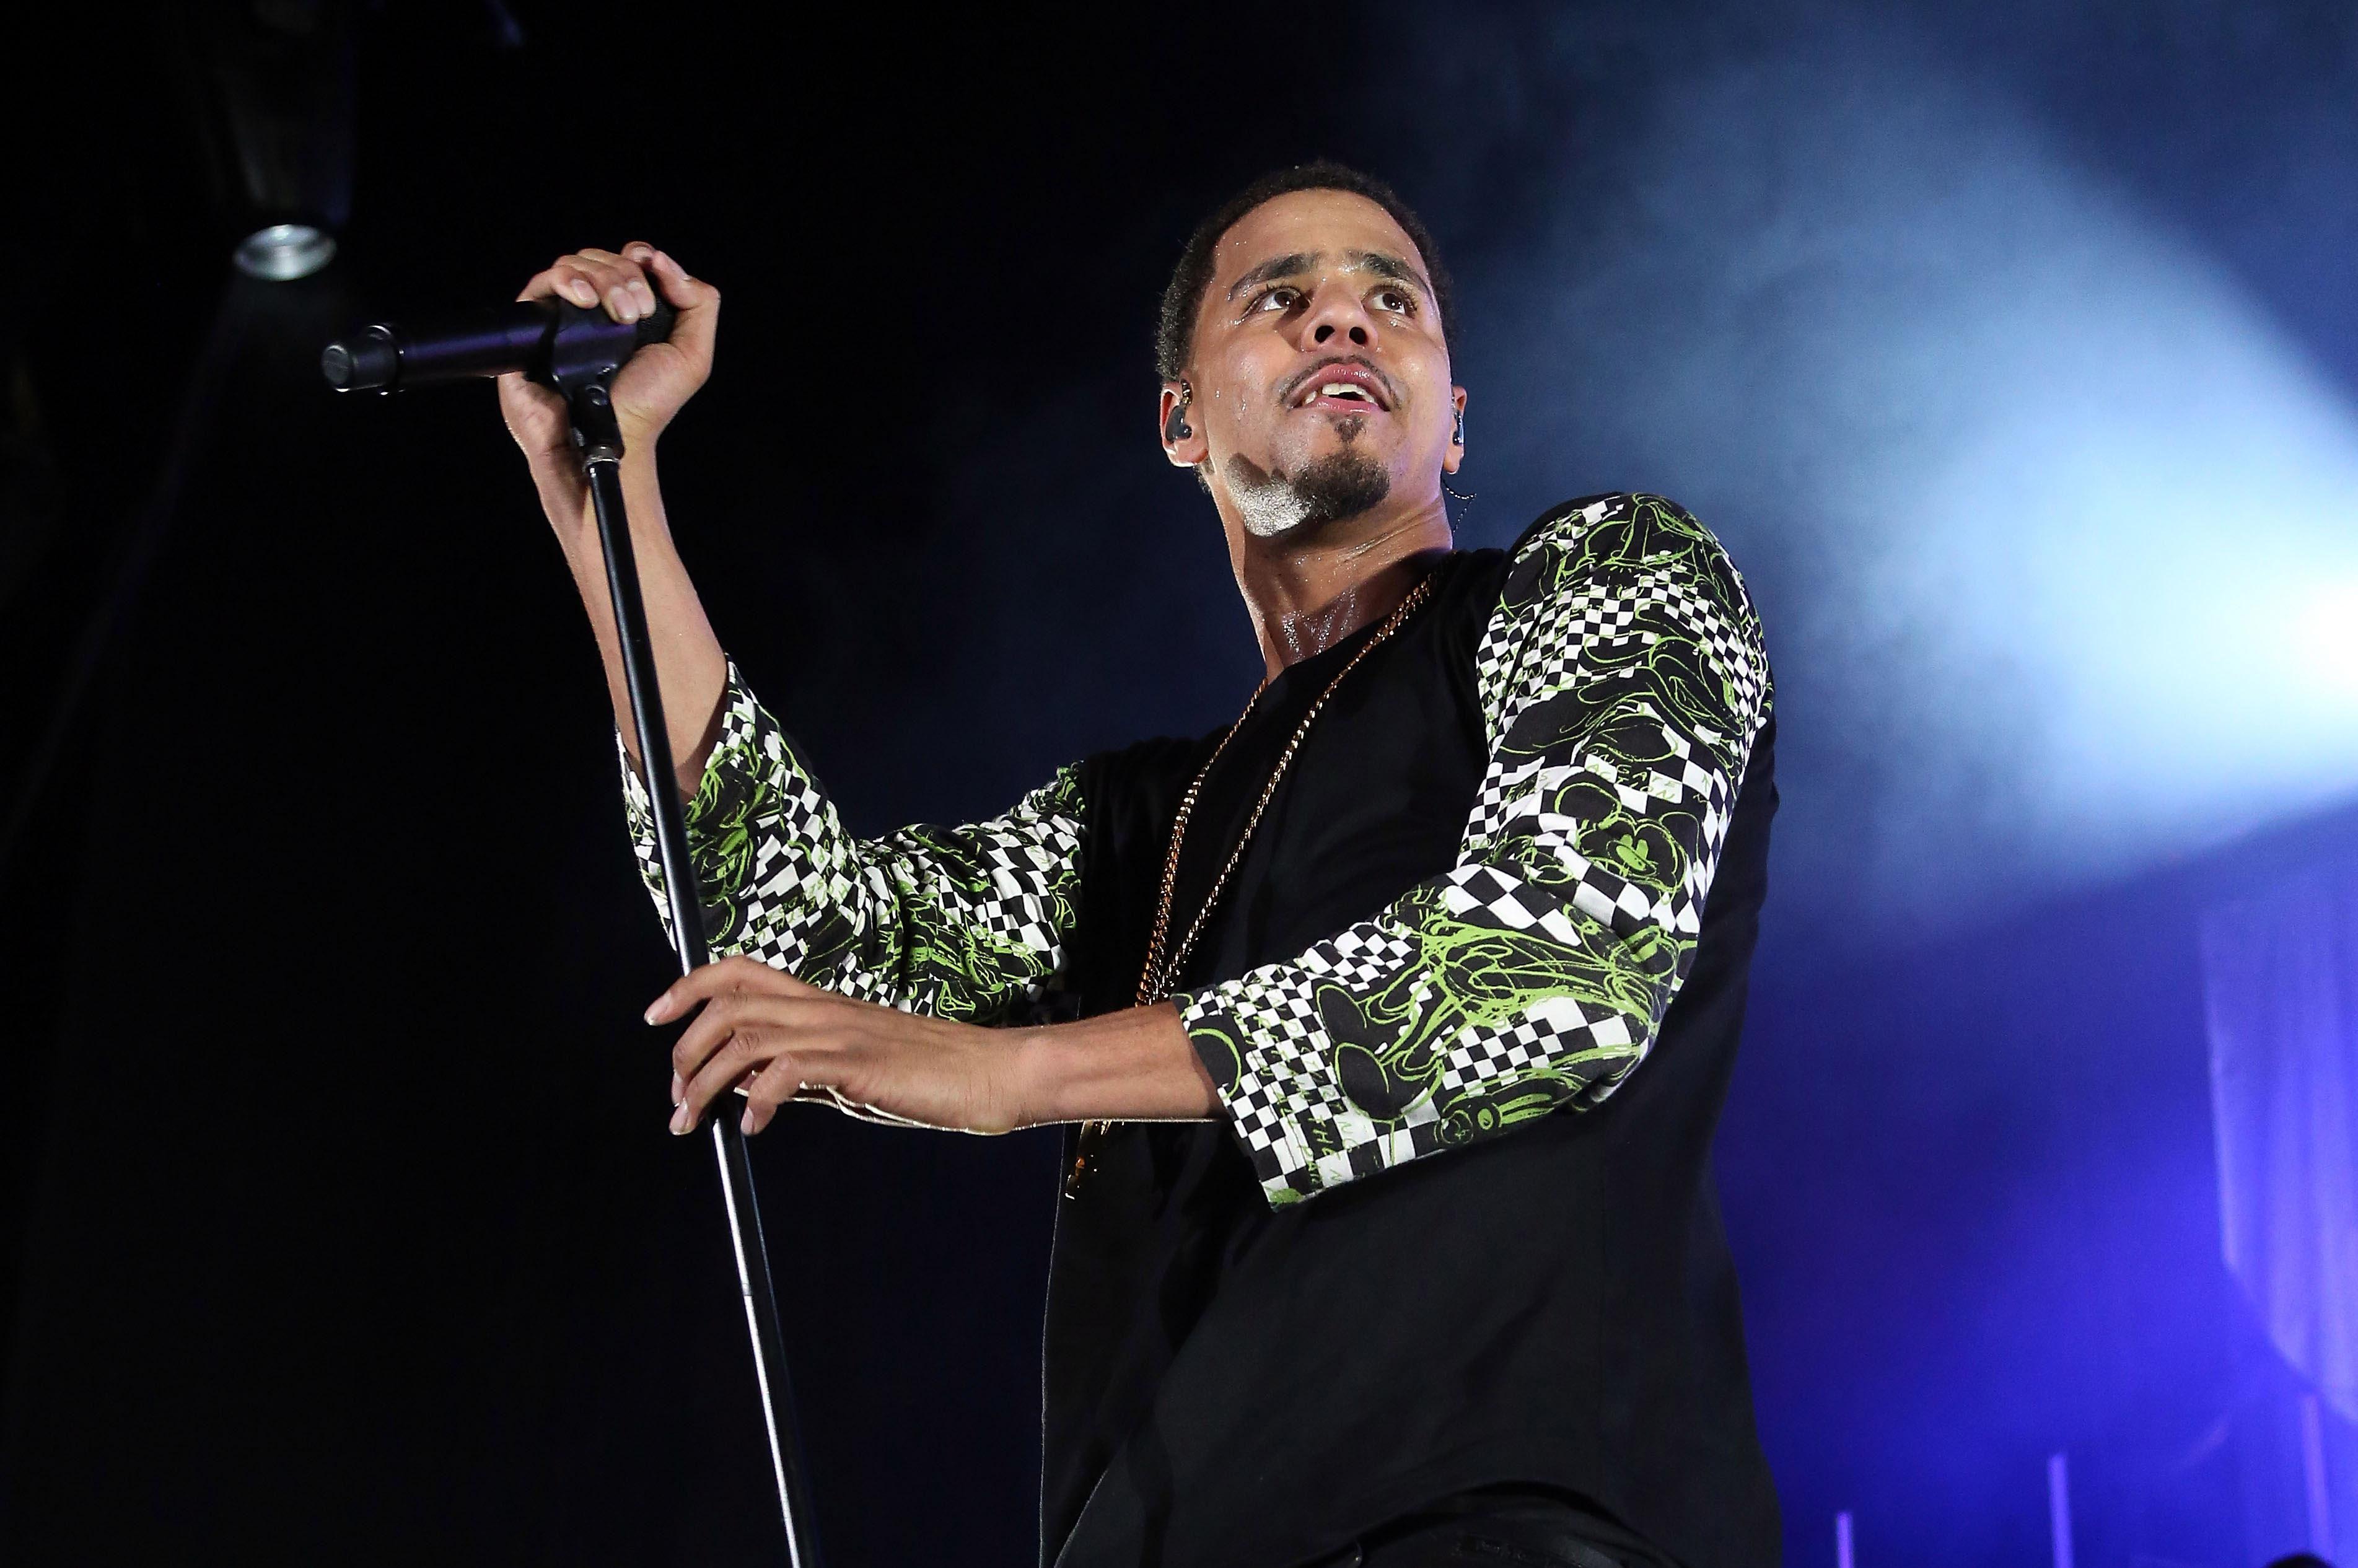 J.Cole 'What Dreams May Come' Tour - New York, NY